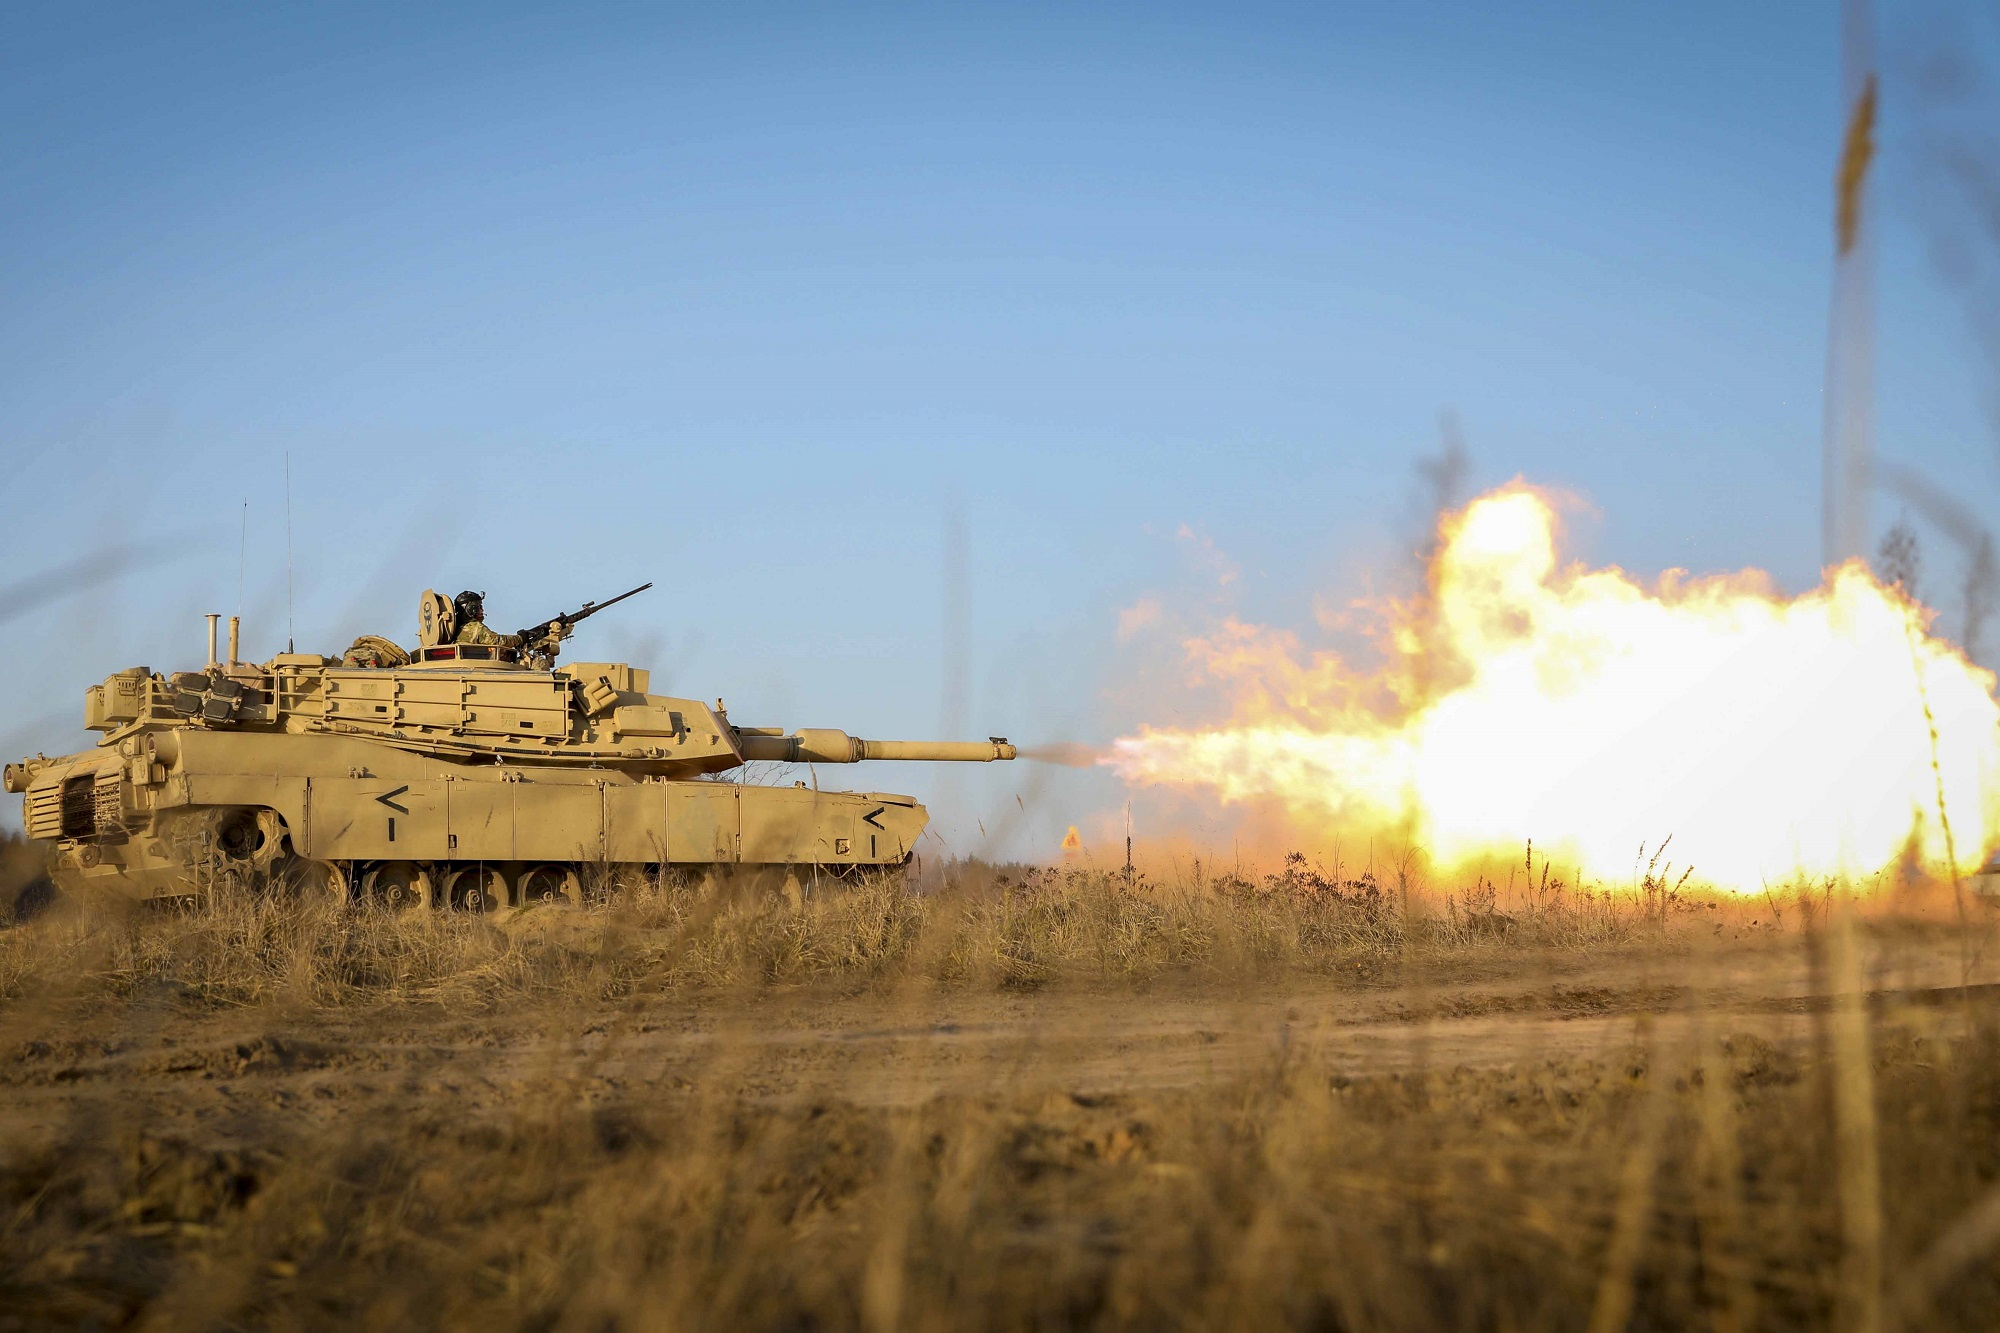 Gasses ignite as an M1 Abrams tank fires its main gun during a Dec. 10, 2020, live fire as part of the Ready to Fight operations after arriving to the Pabrade Training Area, Lithuania. (Sgt. Alexandra Shea/Army)